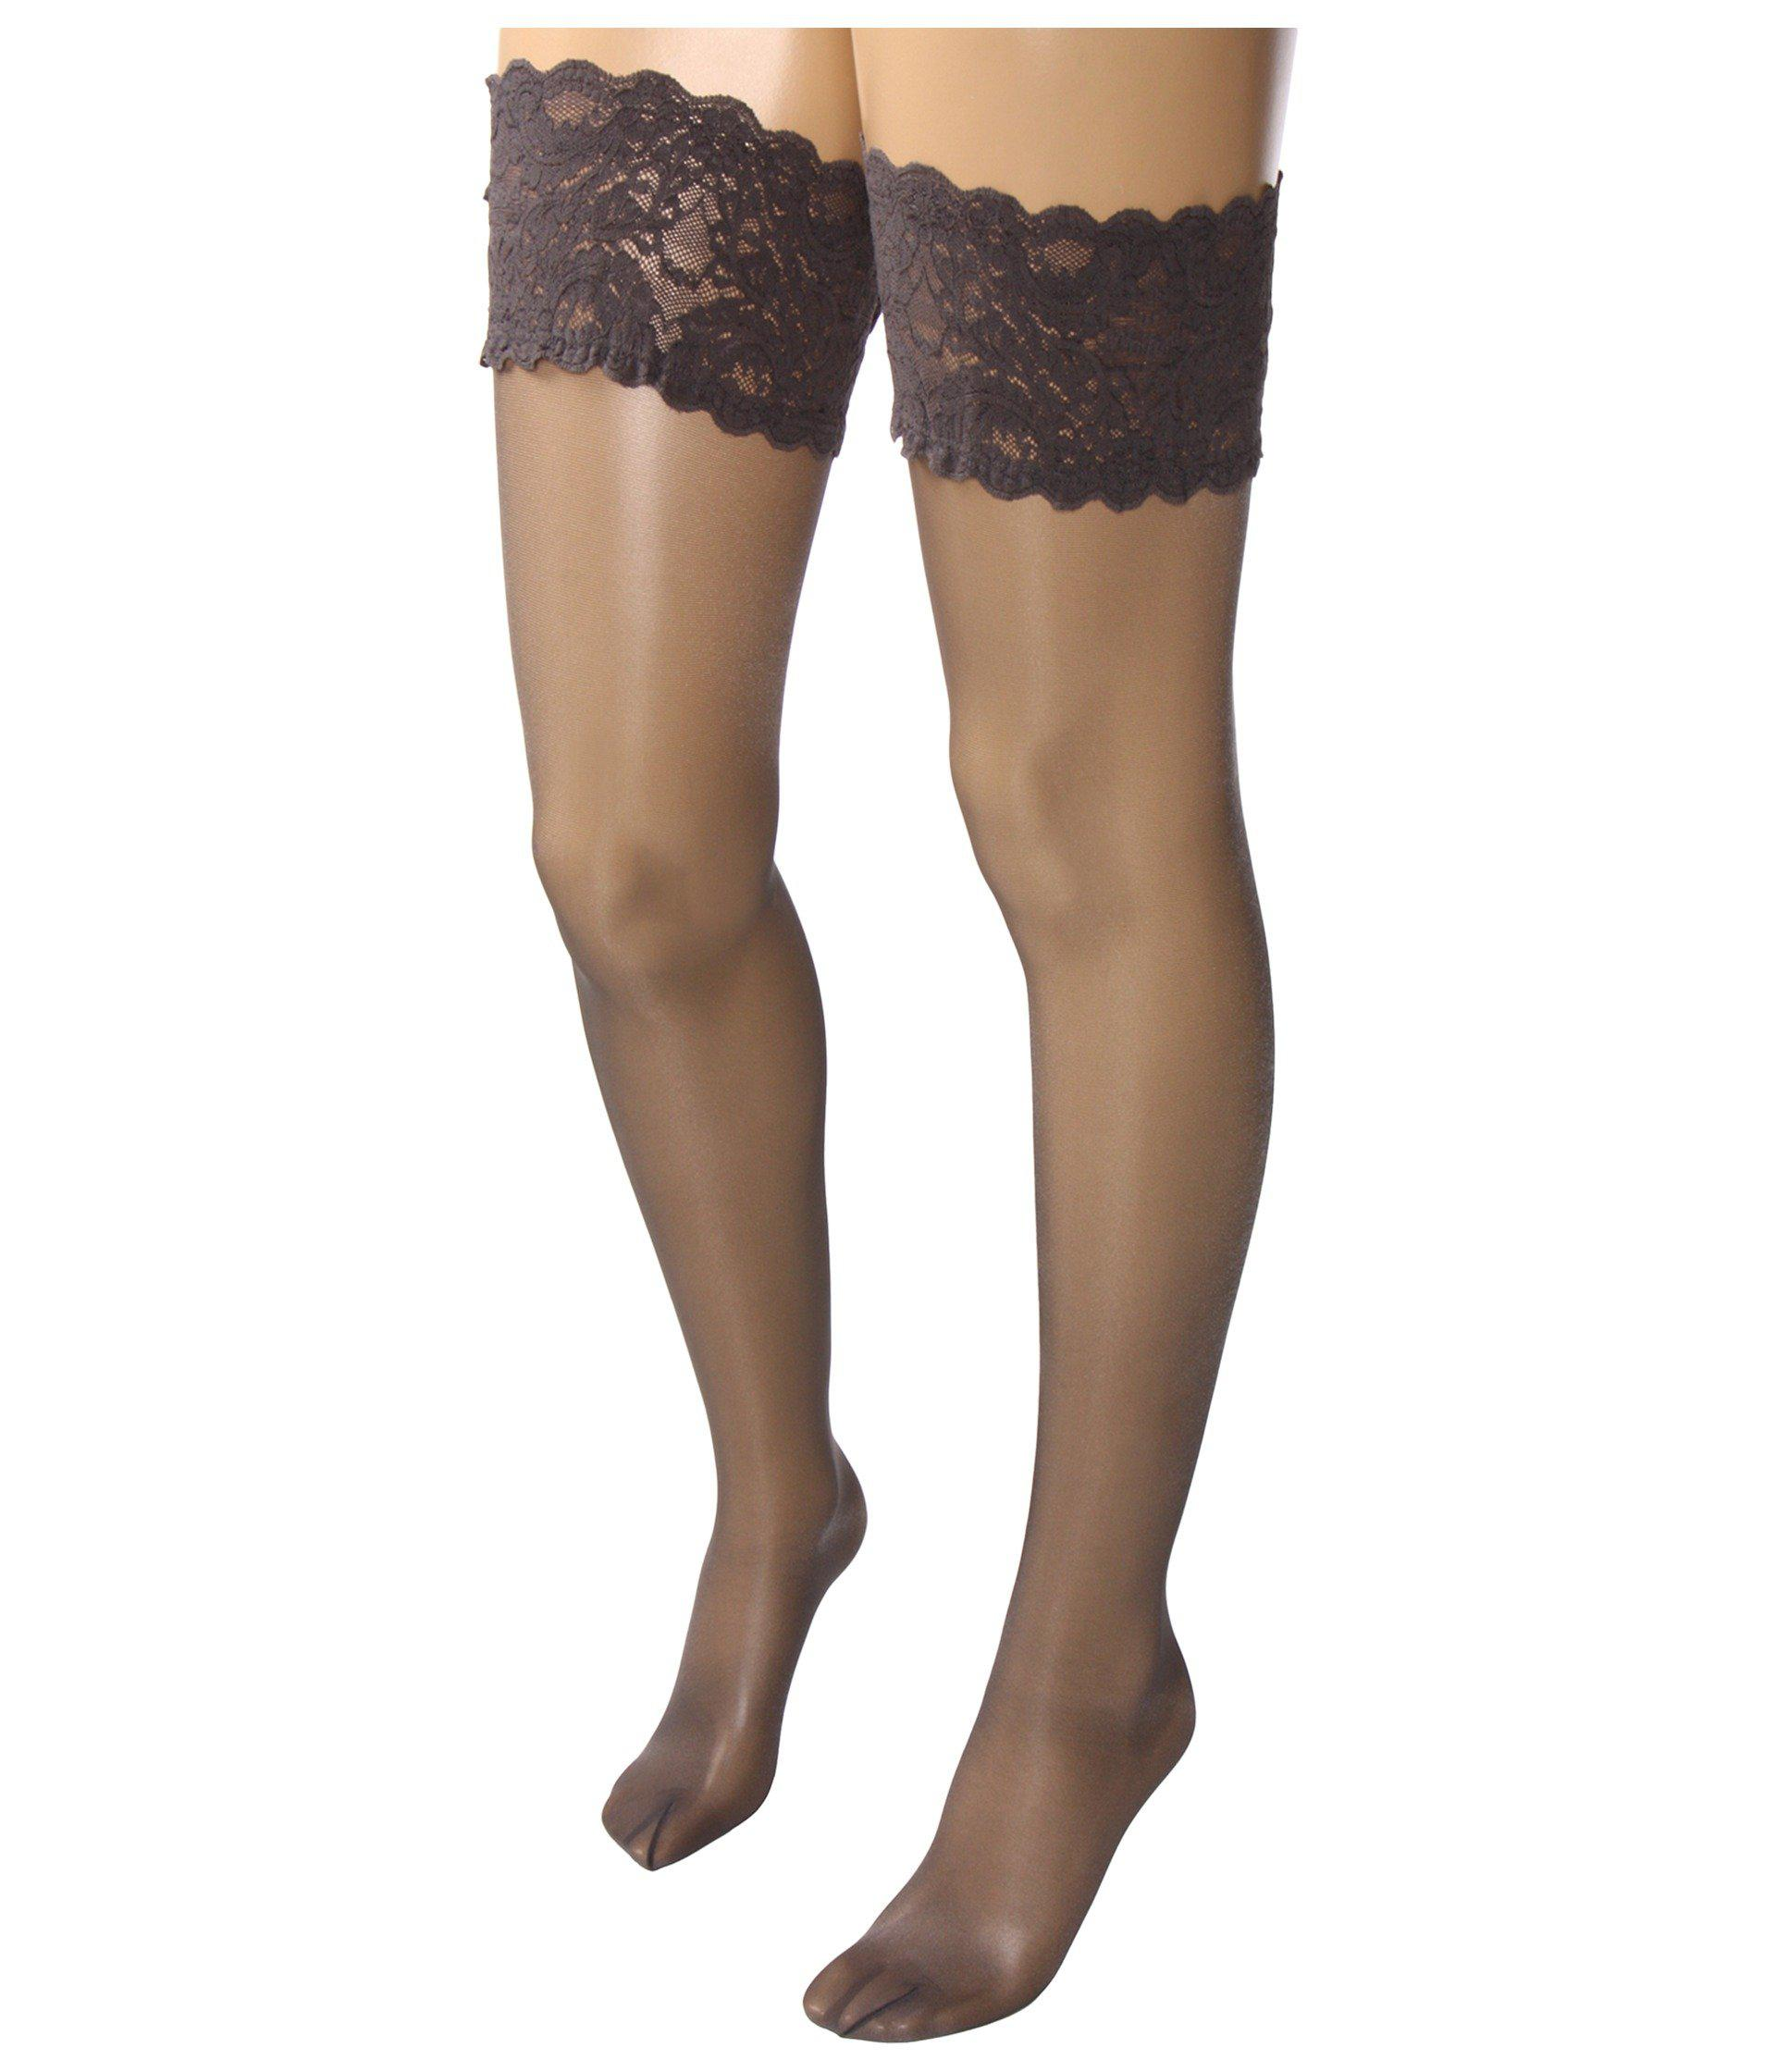 6fd6a662684 Wolford Satin Touch 20 Stay-up Thigh Highs (cosmetic) Women s Thigh High  Socks Shoes in Gray - Lyst